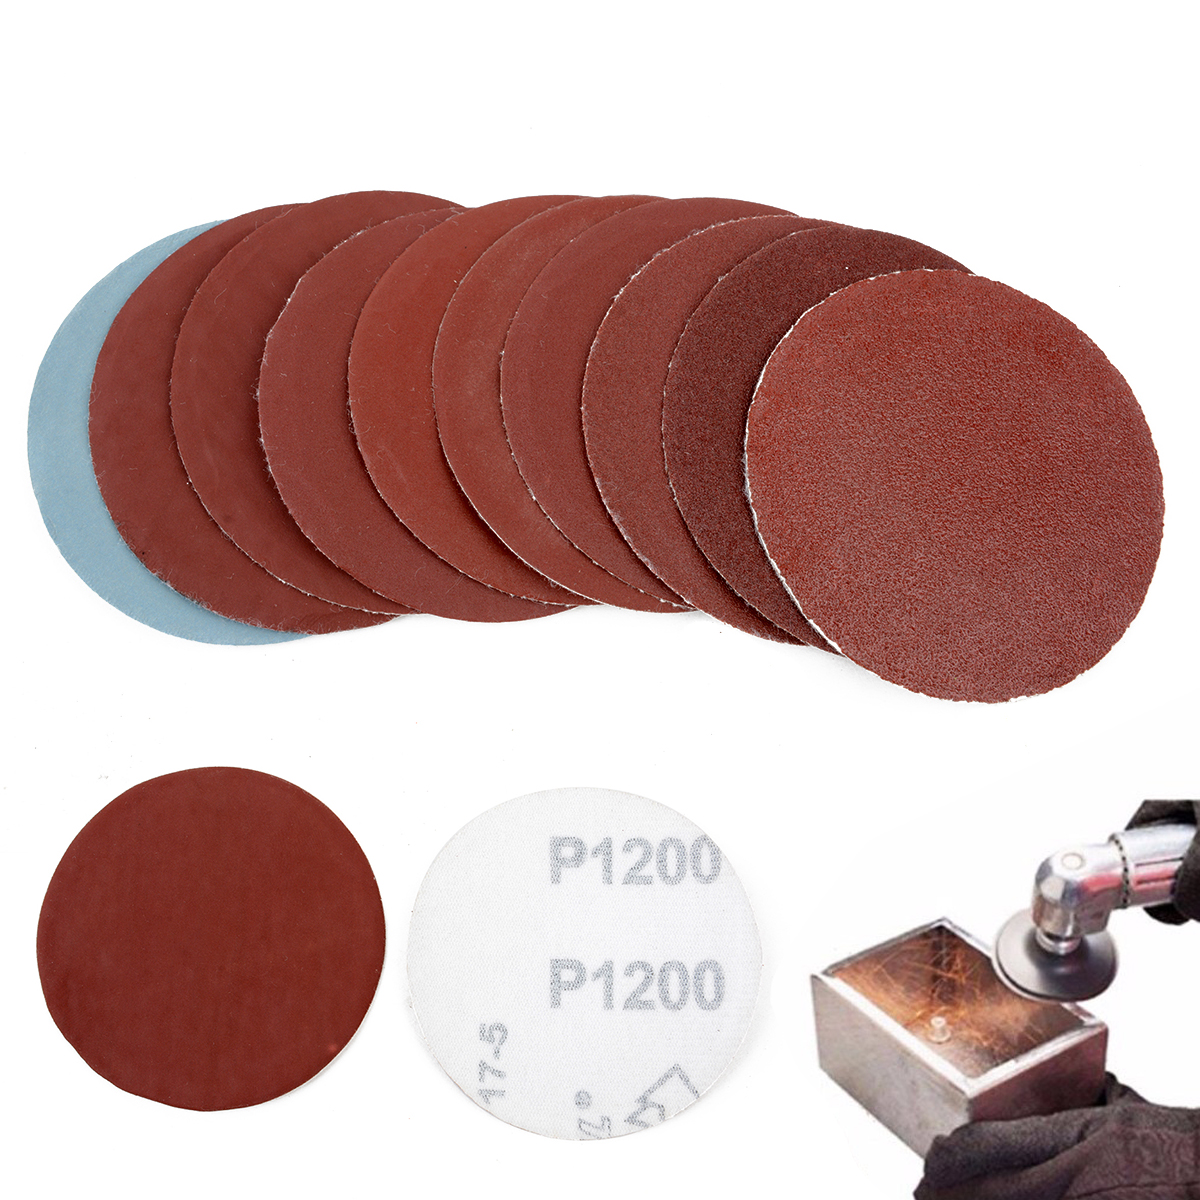 100x 75mm 3/'/' Water Grinding Abrasive Paper Grit 80-3000 For Flocking Sandpaper